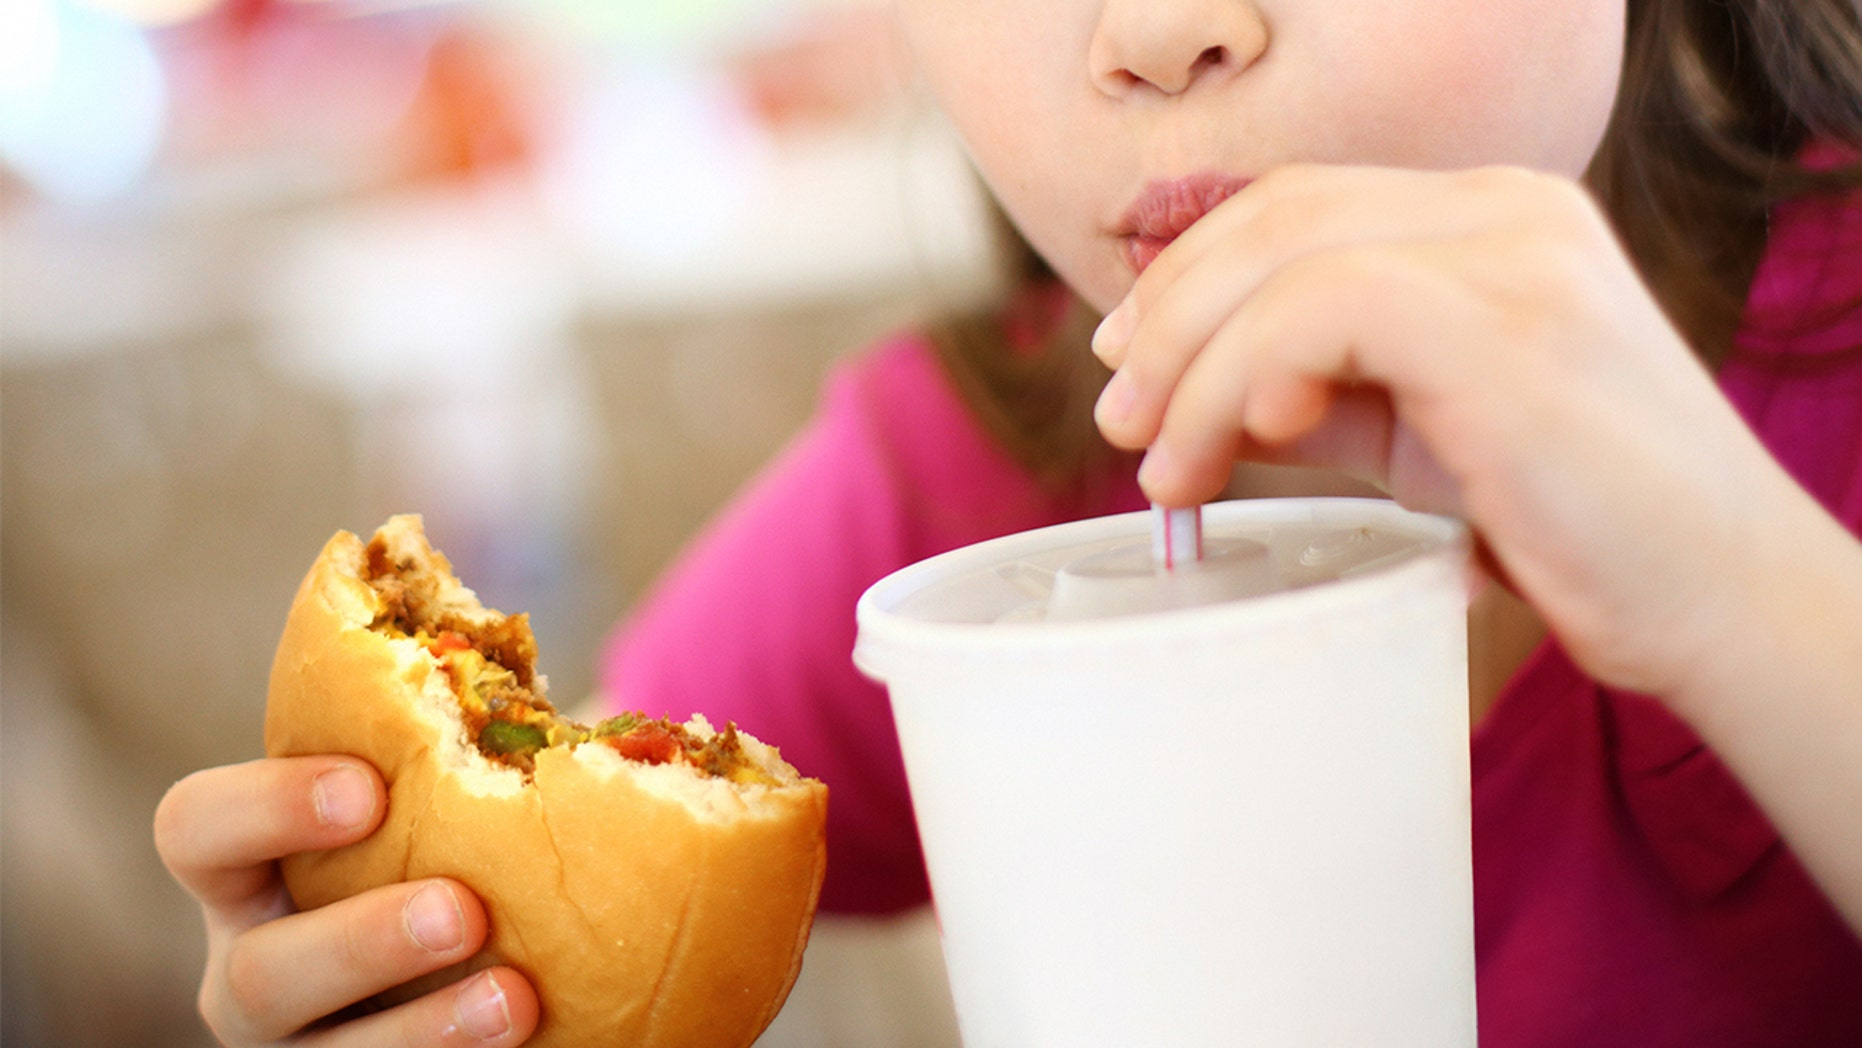 Baltimore restaurants can no longer include soda and sugary drinks on kids' menus.